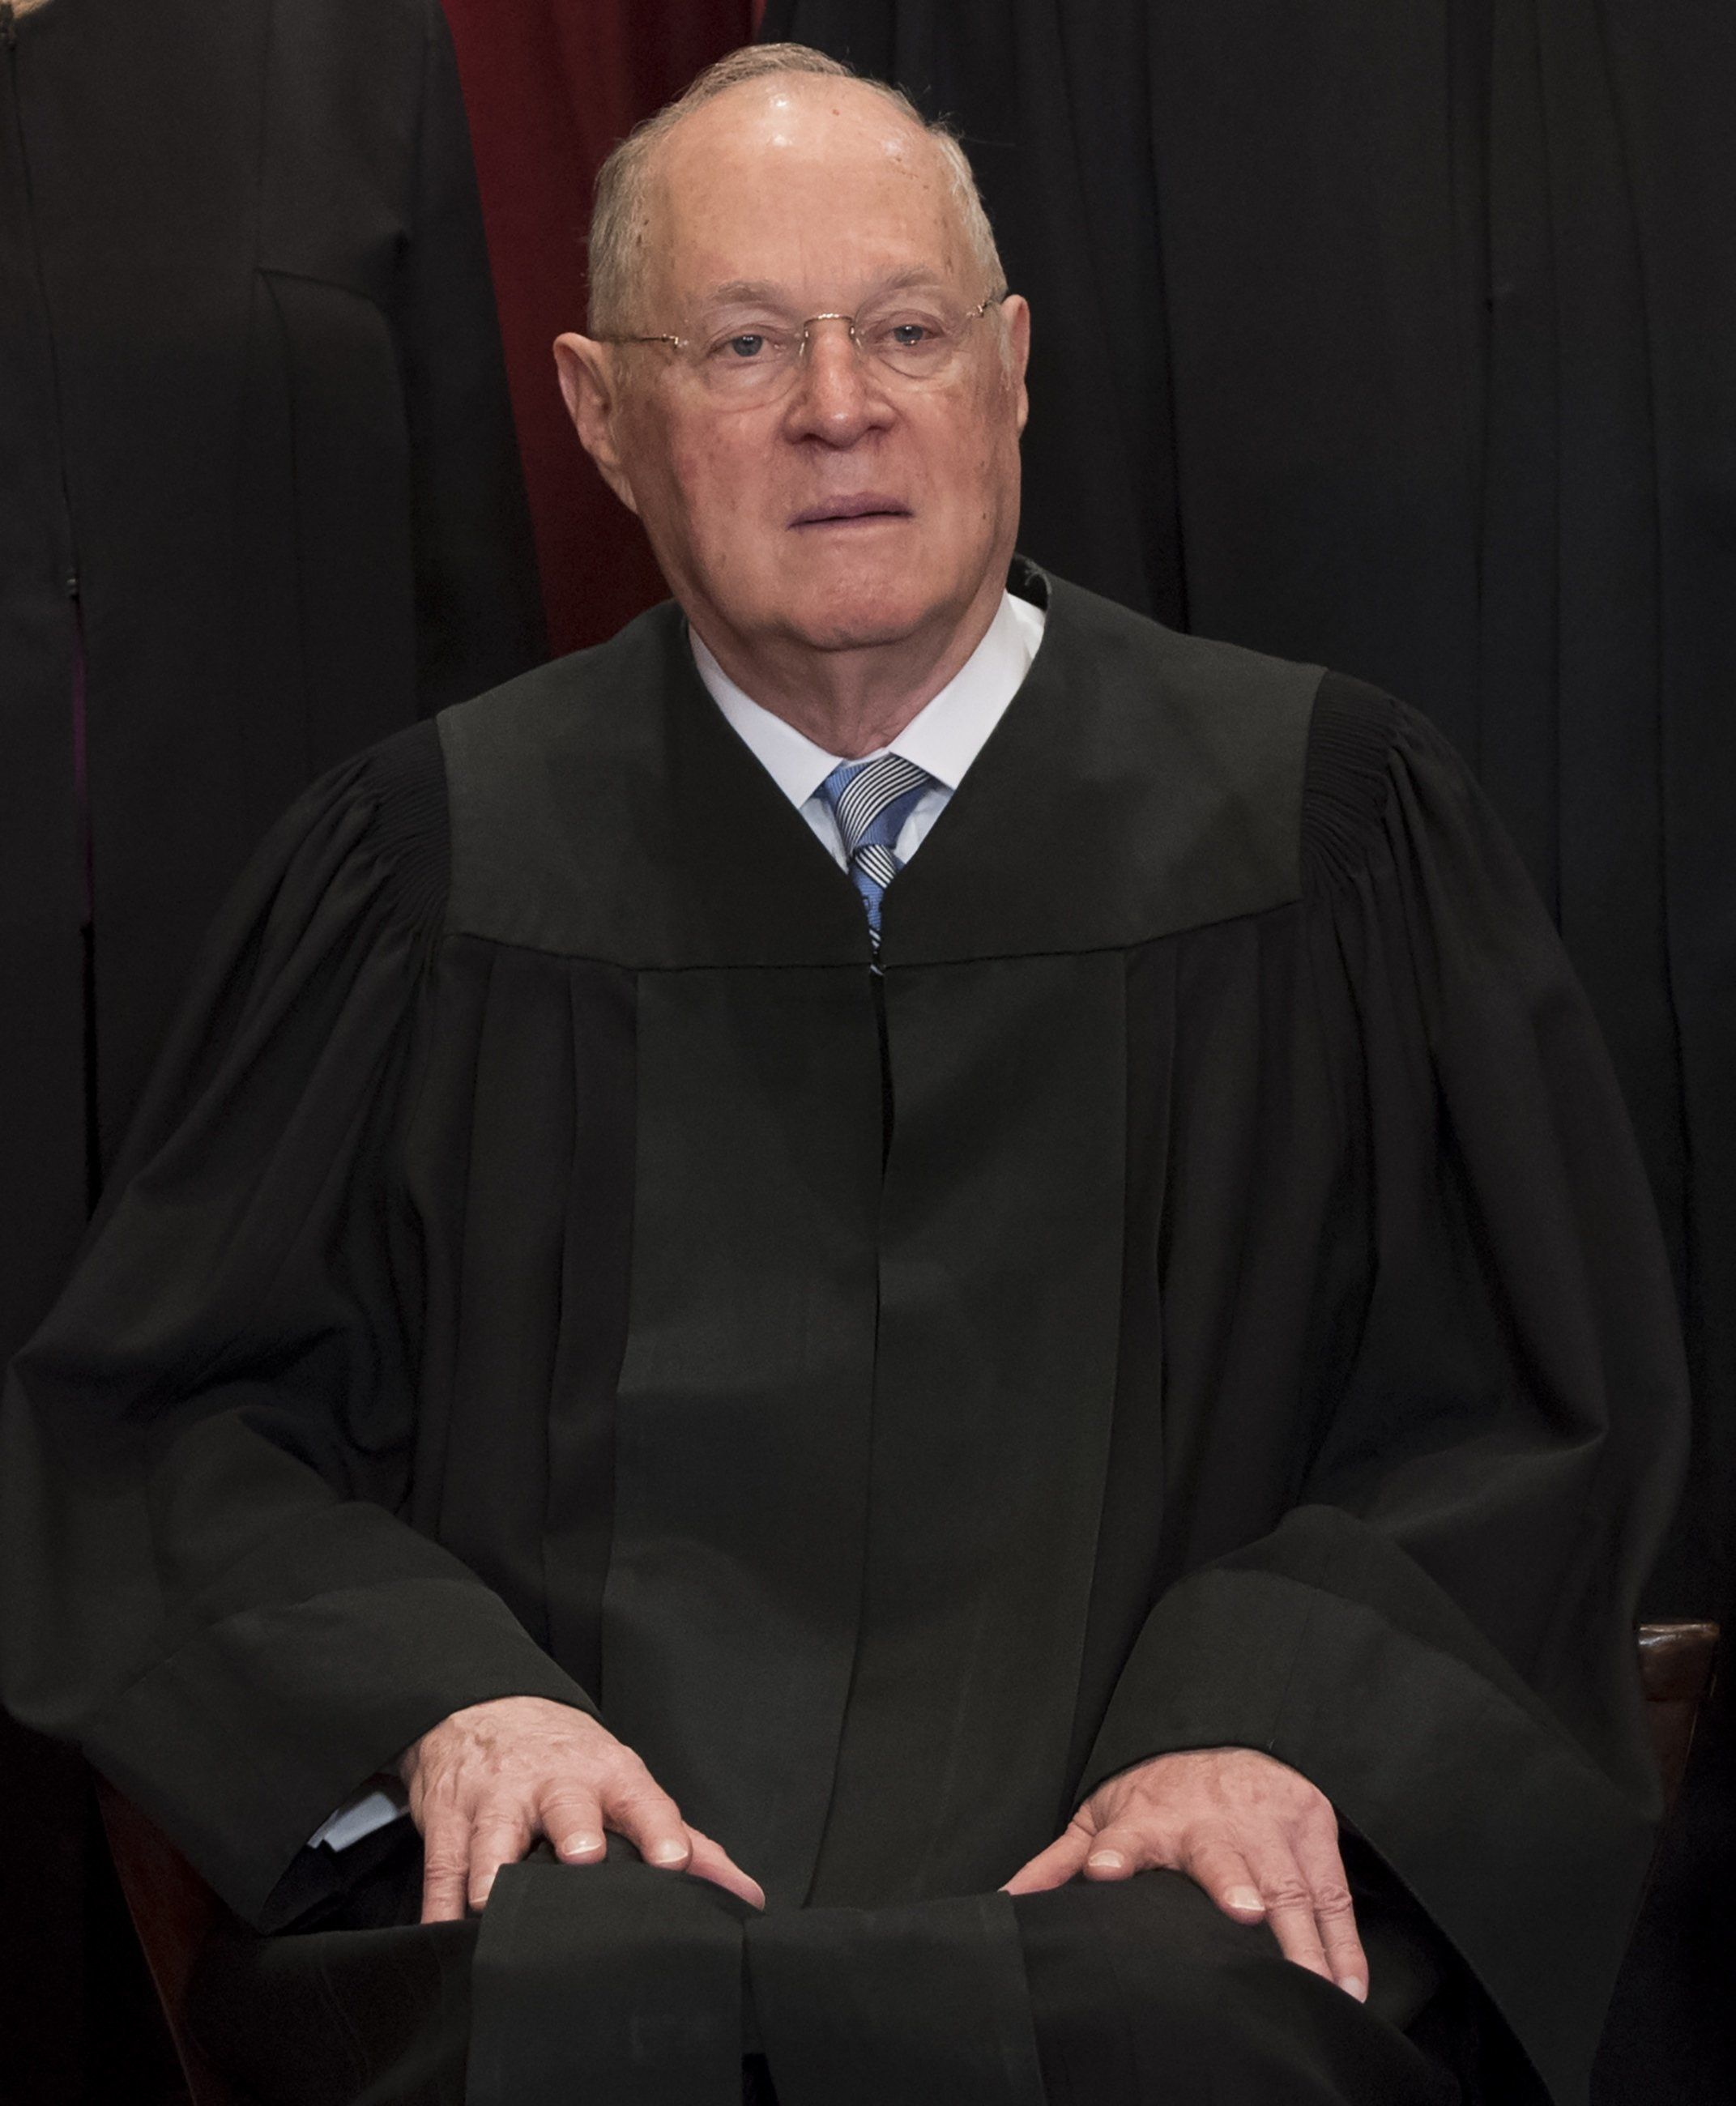 US Supreme Court Associate Justice Anthony M. Kennedy sits for an official photo with other members of the US Supreme Court in the Supreme Court in Washington, DC, June 1, 2017. / AFP PHOTO / SAUL LOEB        (Photo credit should read SAUL LOEB/AFP/Getty Images)